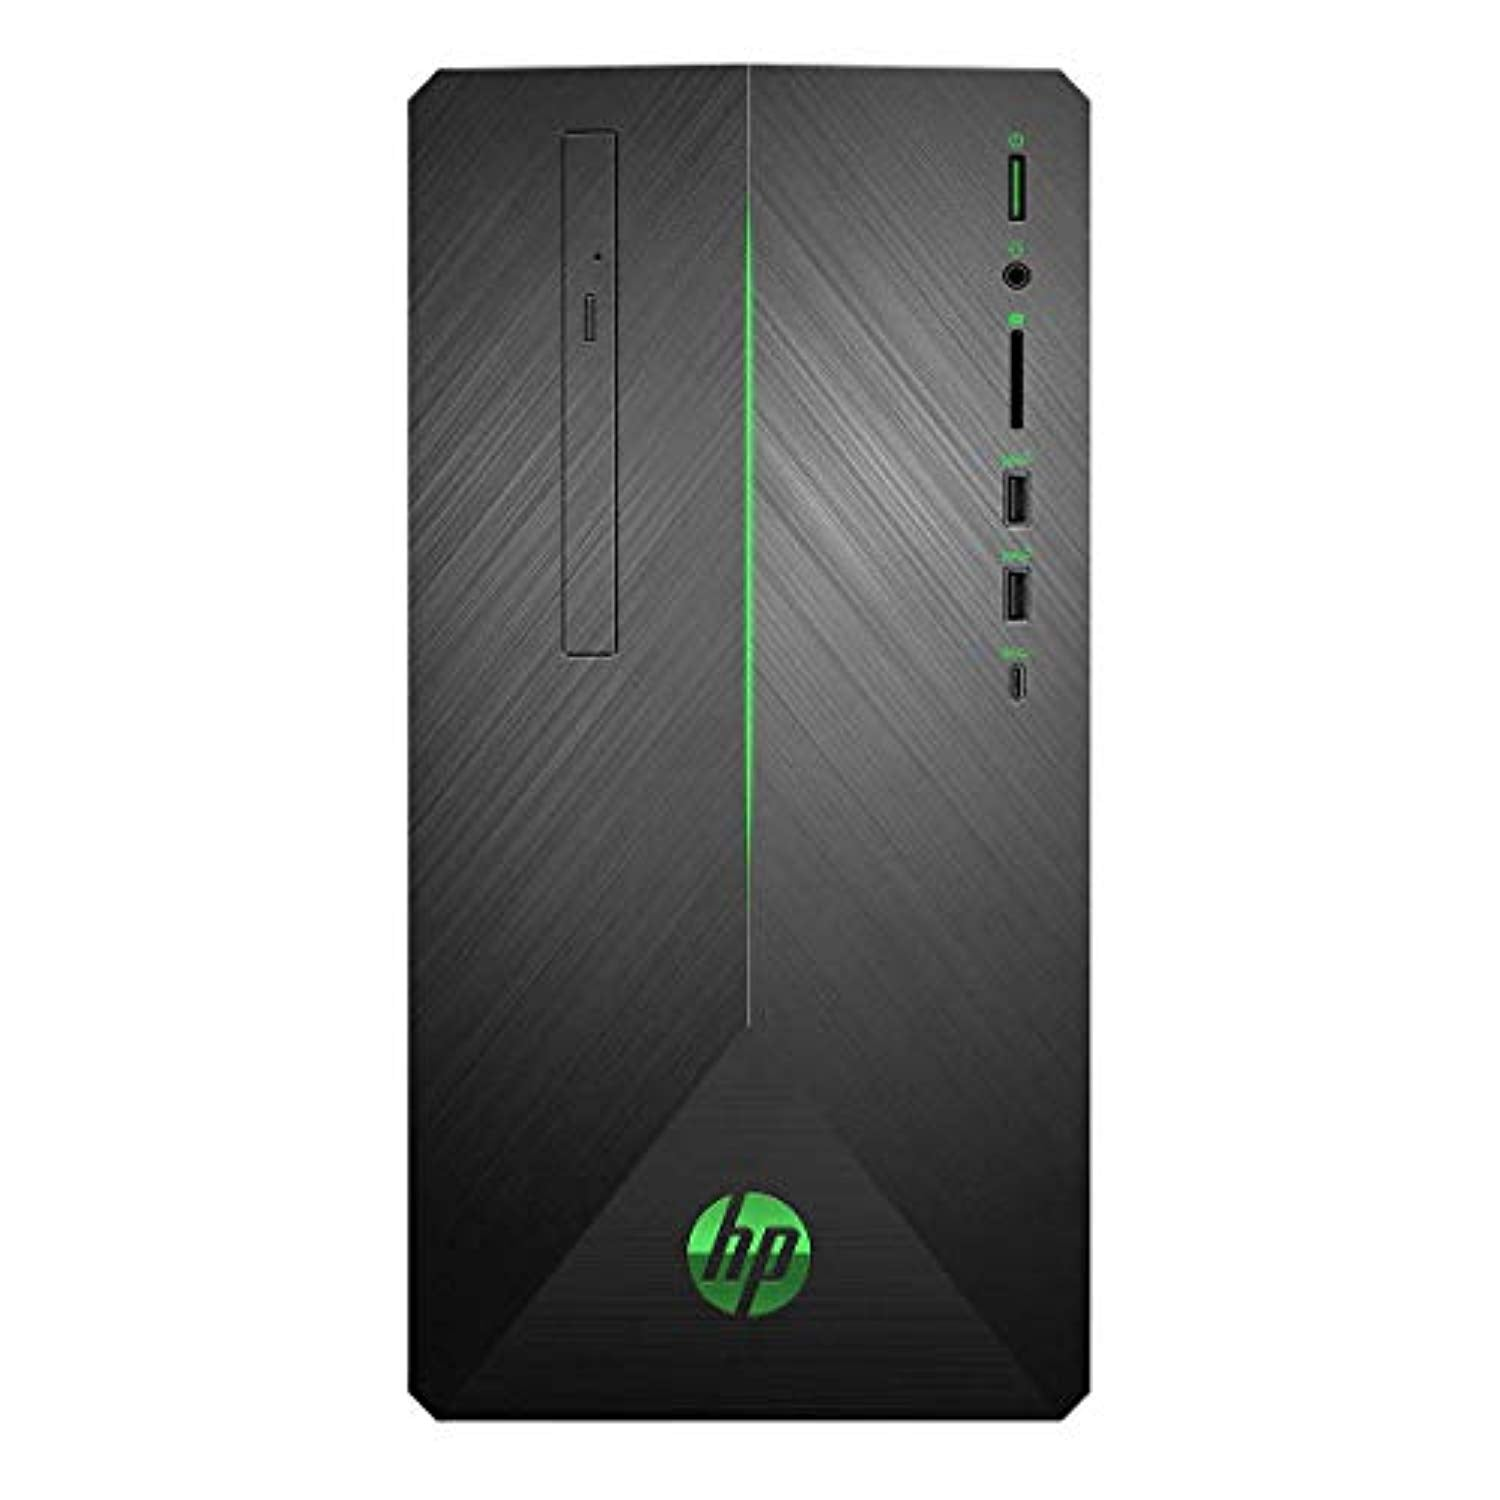 HP HP3LA37AAR Pavilion 690-0067C Gaming Desktop, AMD Ryzen 7 1700 3.0GHz, 16GB DDR4, 1TB SATA HDD, DVD, AMD Radeon RX 550 4GB, 802.11ac, Bluetooth, Win10Home (Certified Refurbished)